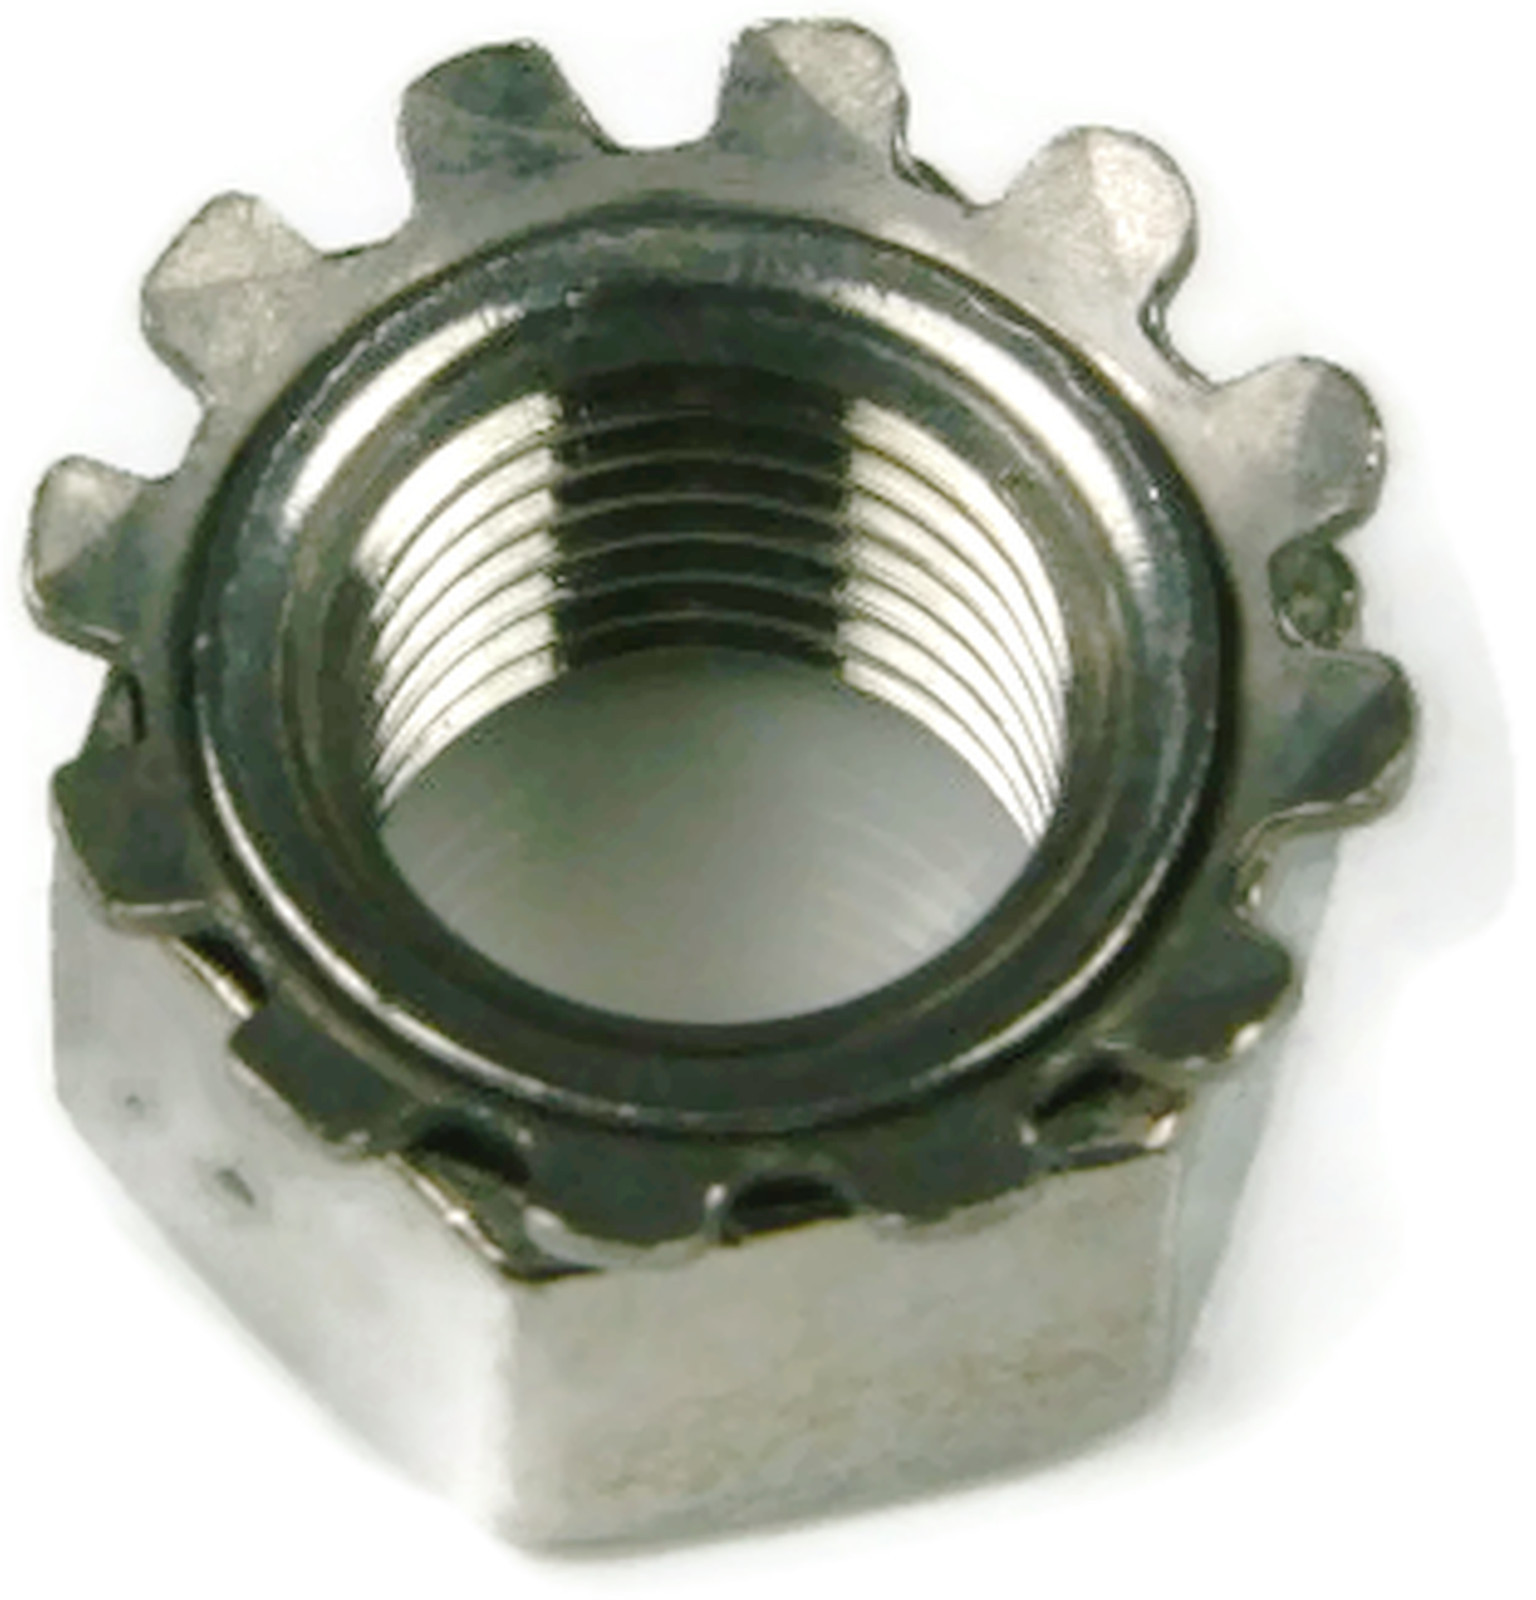 Stainless Steel Keps K Lock Nut UNC #4-40 Qty 100